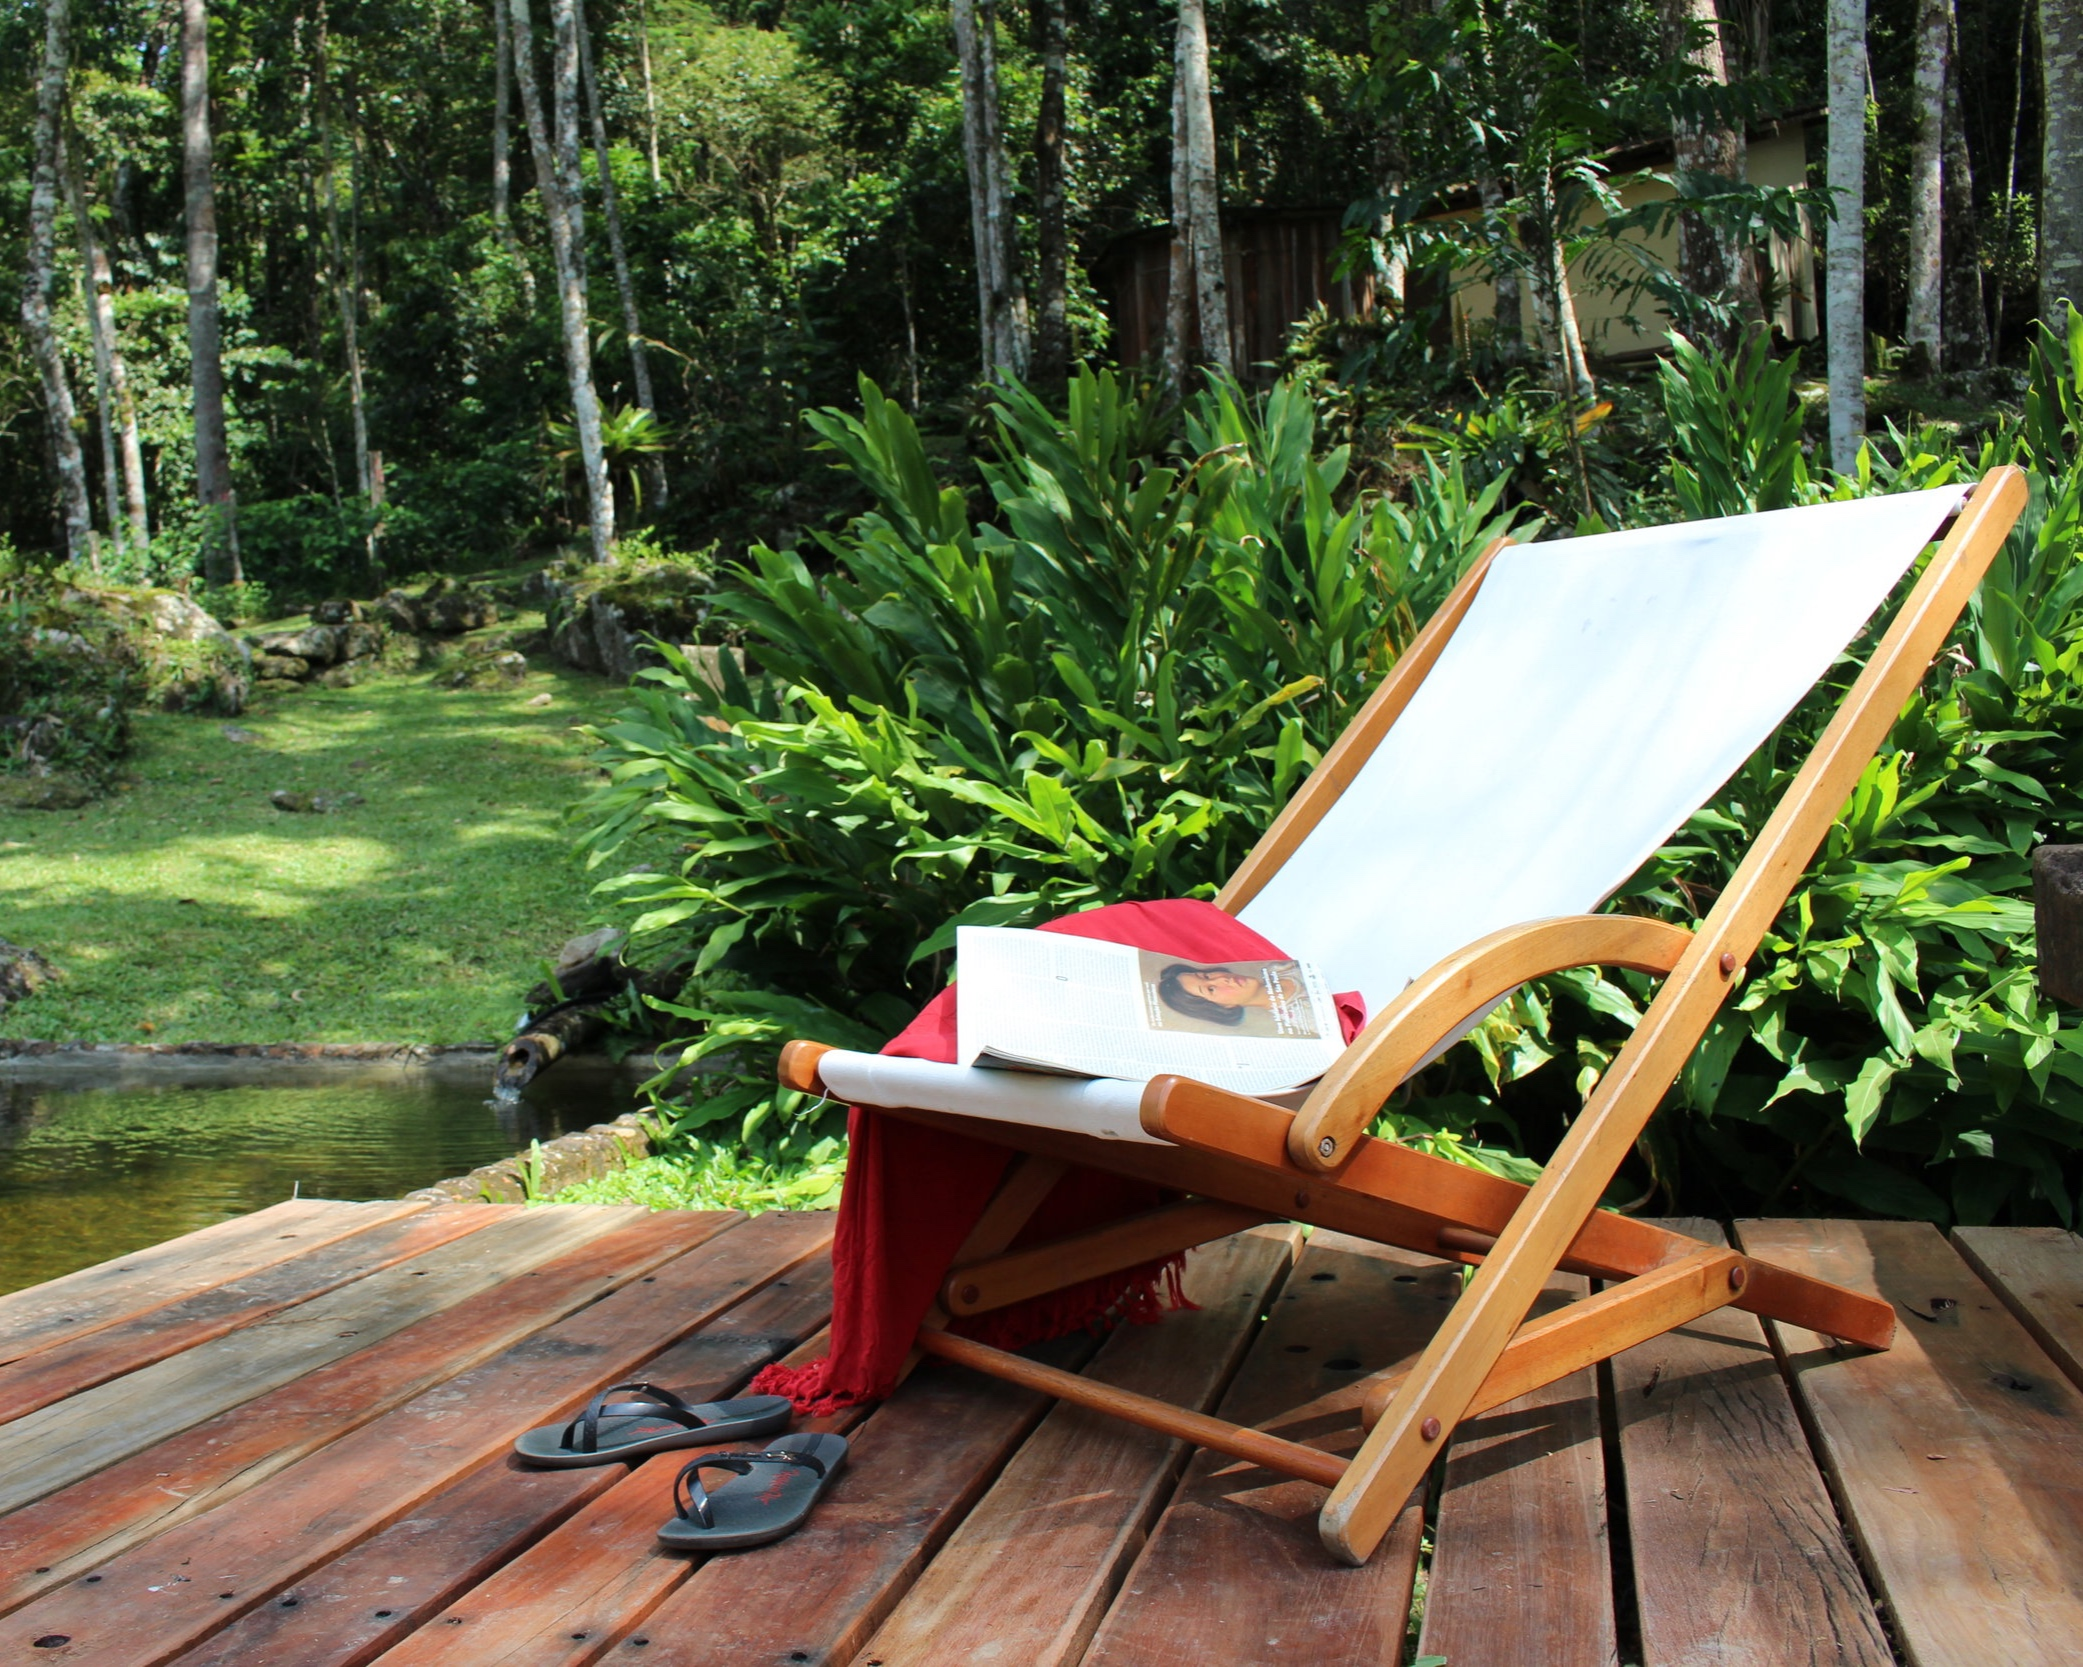 Nova Friburgo - Beautiful Nature Lodge in the Atlantic Rainforest.A beautiful 5 bedroom country home in the heart of the Atlantic Rainforest, natural habitat for some 300 species, a great variety of birds and fauna, located inside the